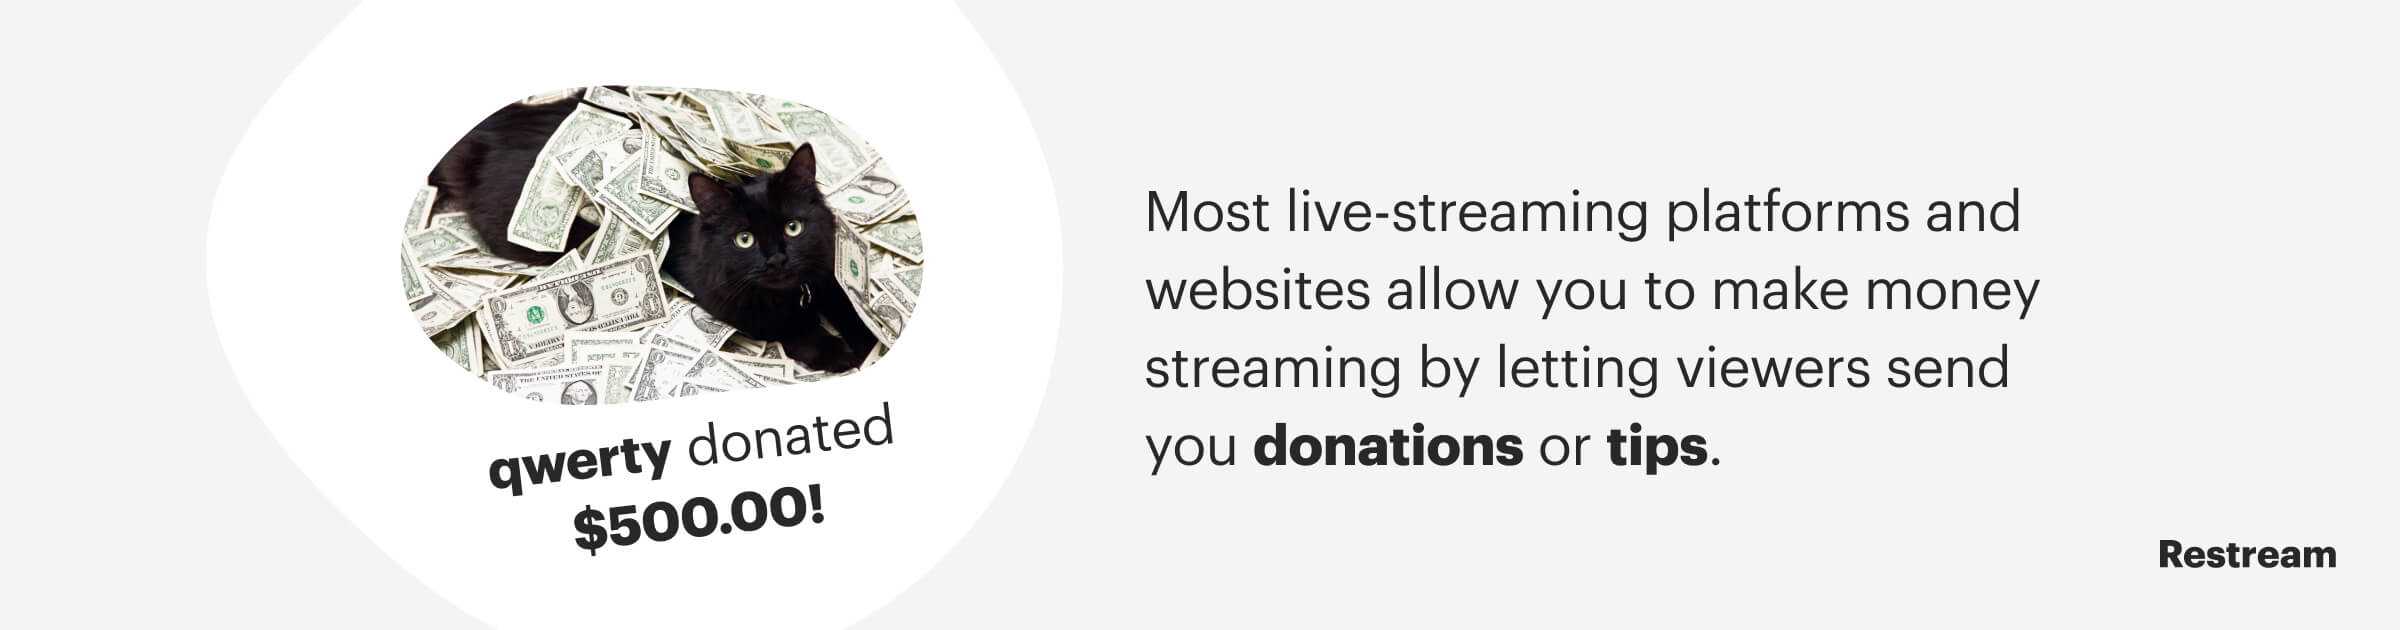 Most live-streaming platforms allow you to make money streaming by letting viewers send you donations or tips